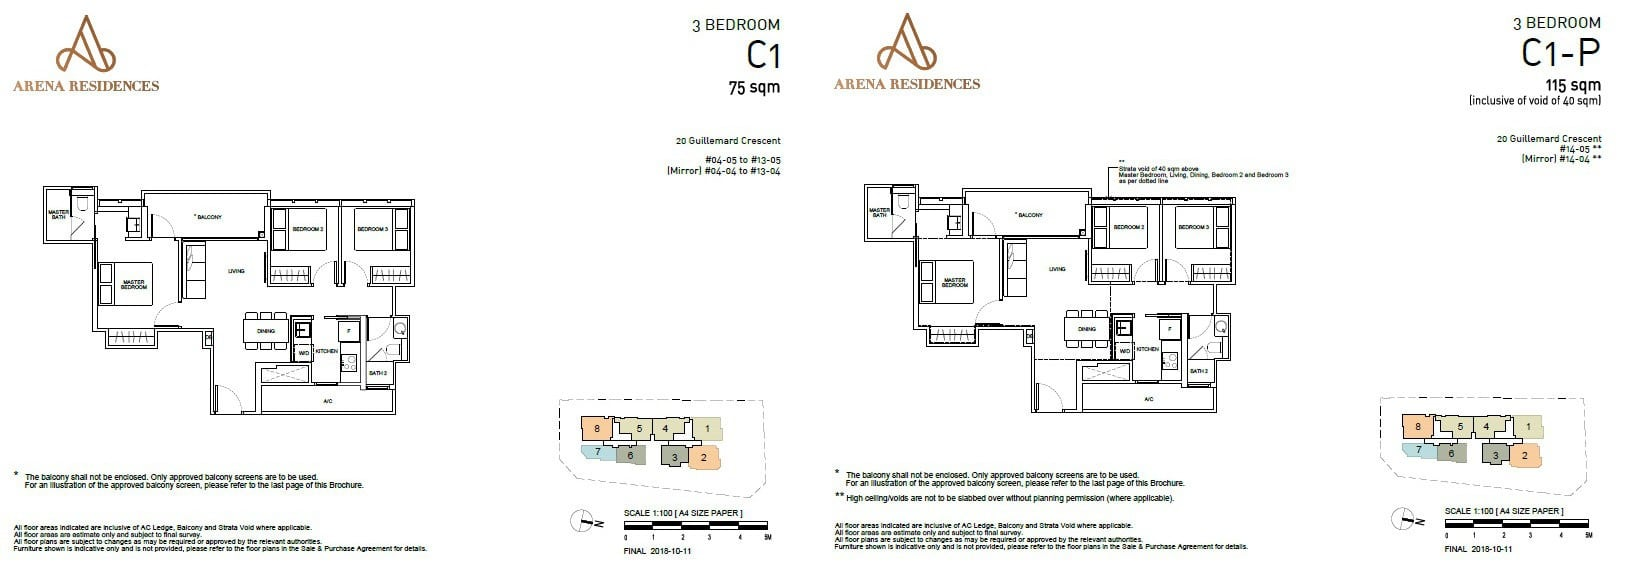 Arena Residences Guillemard - Floor Plan 3Bedroom